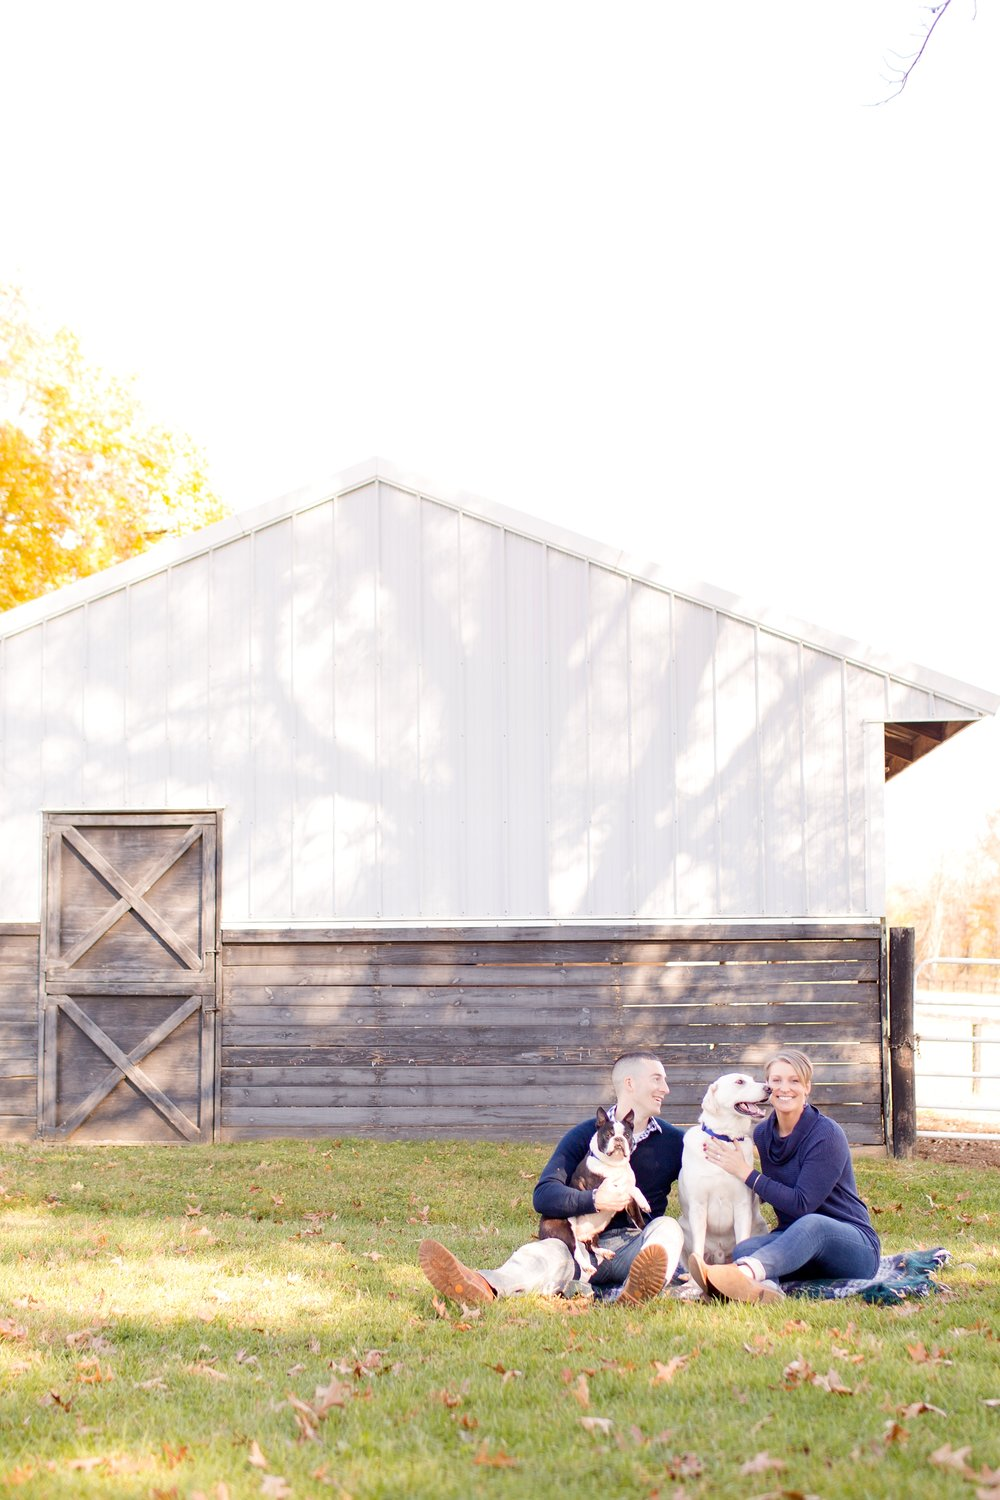 Emily & Joe Engaged-153_anna grace photography baltimore maryland wedding and engagement photographer helmore farm photo.jpg